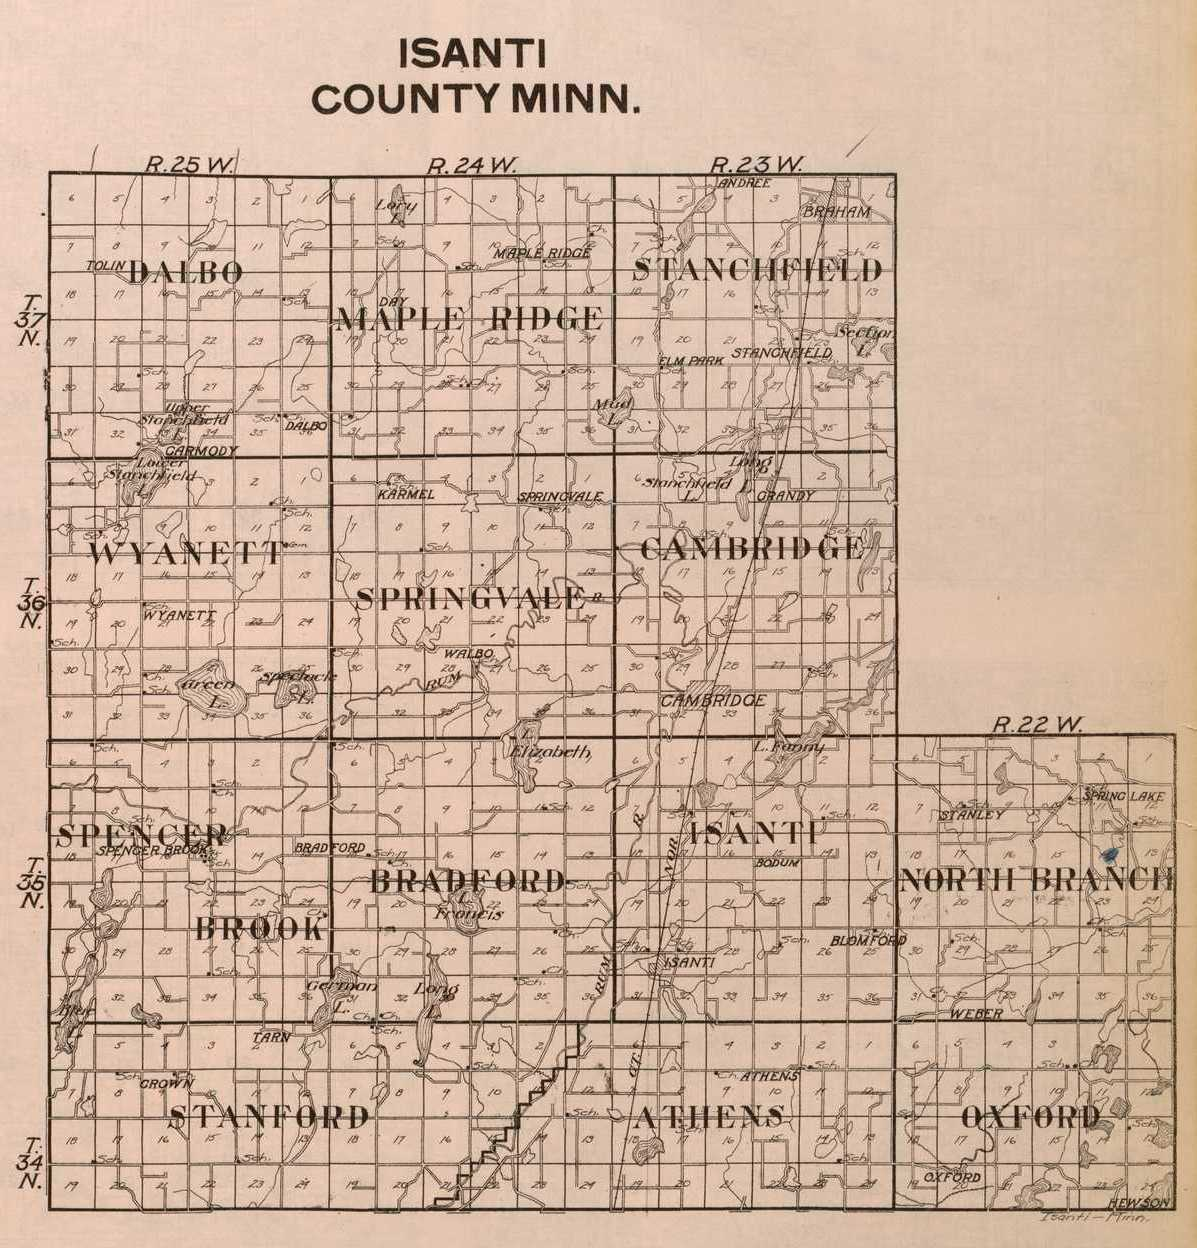 1916isanticounty Map Of Isanti County Mn on map of mcleod county mn, map of blue earth county mn, map of olmsted county mn, map of rock county mn, map of big stone county mn, map of washington county mn, map of mille lacs county mn, map of pennington county mn, map of pipestone county mn, anoka county mn, stearns county mn, map of wilkin county mn, map of crow wing county mn, map of wabasha county mn, map of yellow medicine county mn, map of ramsey county mn, map of todd county mn, map of ottertail county mn, map of glencoe county mn, map of wadena county mn,